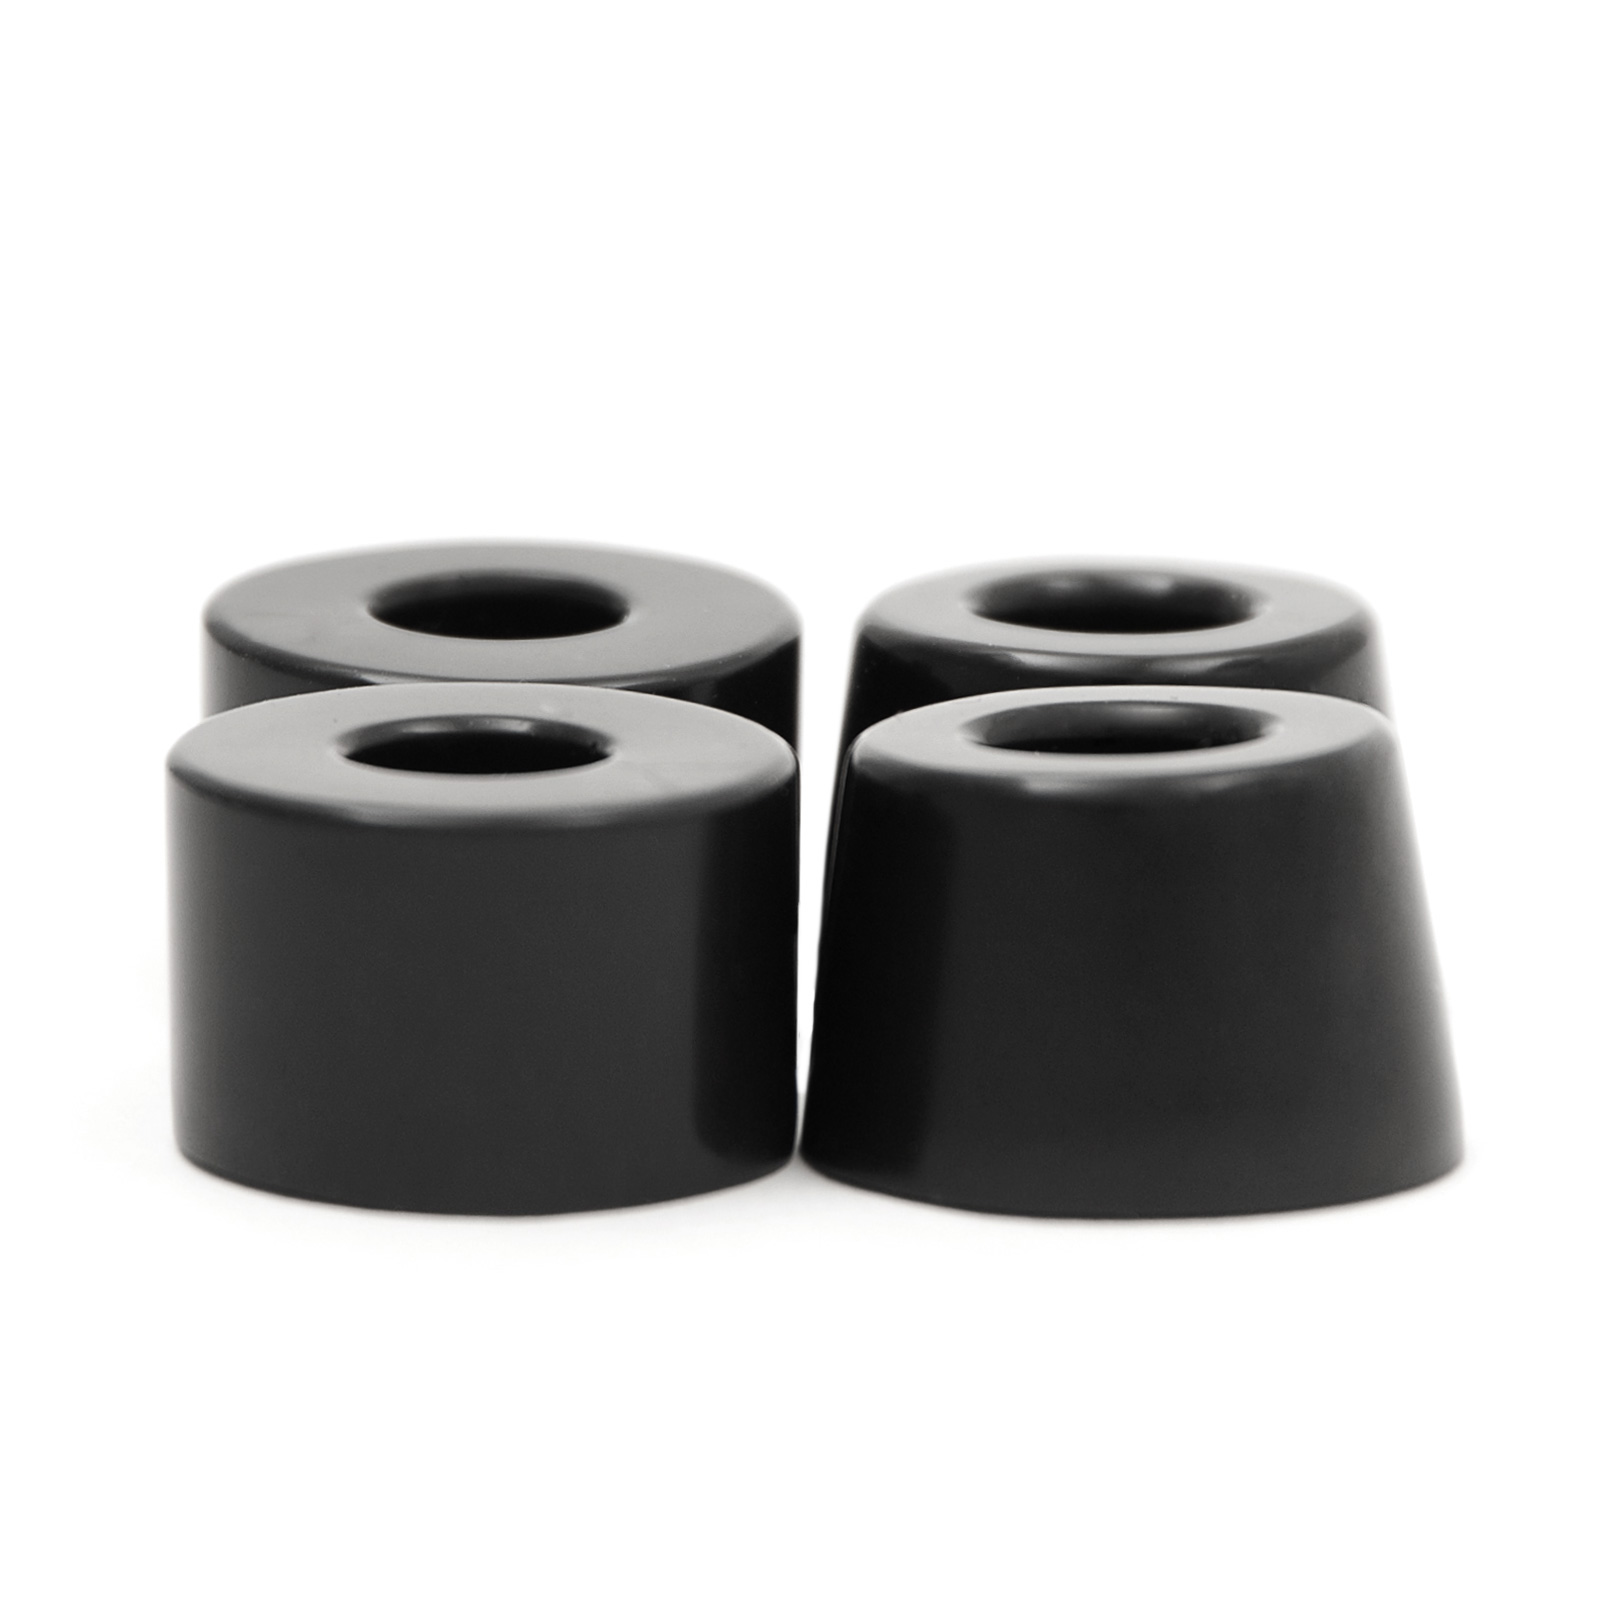 Apollo Longboard Bushings - Schwarz / 90A - Longboard Cushions im Set